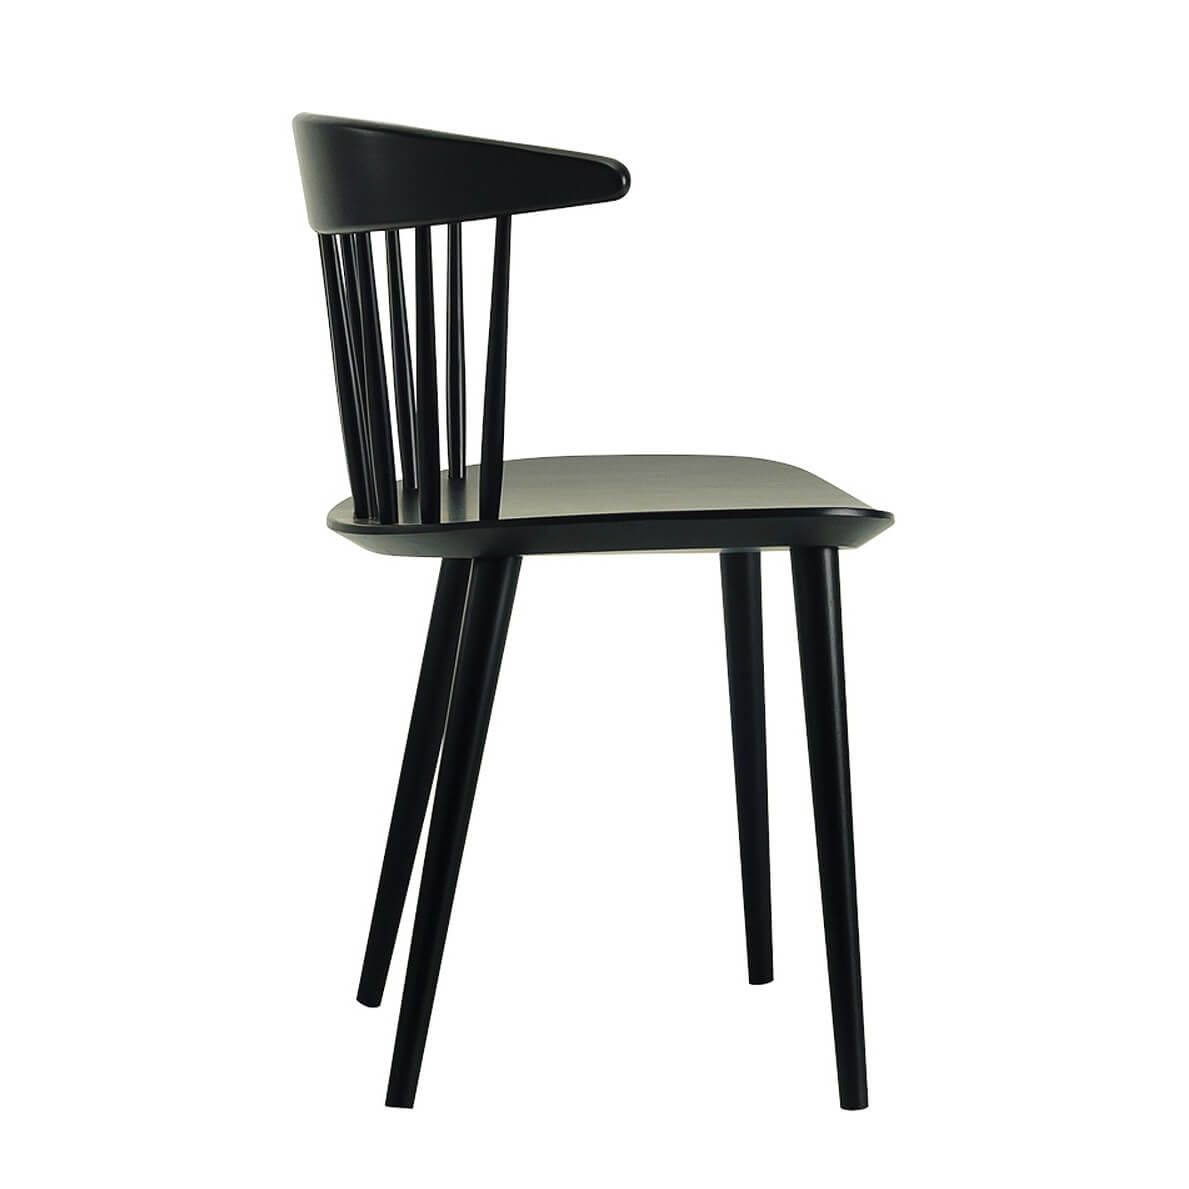 hay chair j104 black kultdesigner j ergen b kmark sitzh he 44 5cm. Black Bedroom Furniture Sets. Home Design Ideas